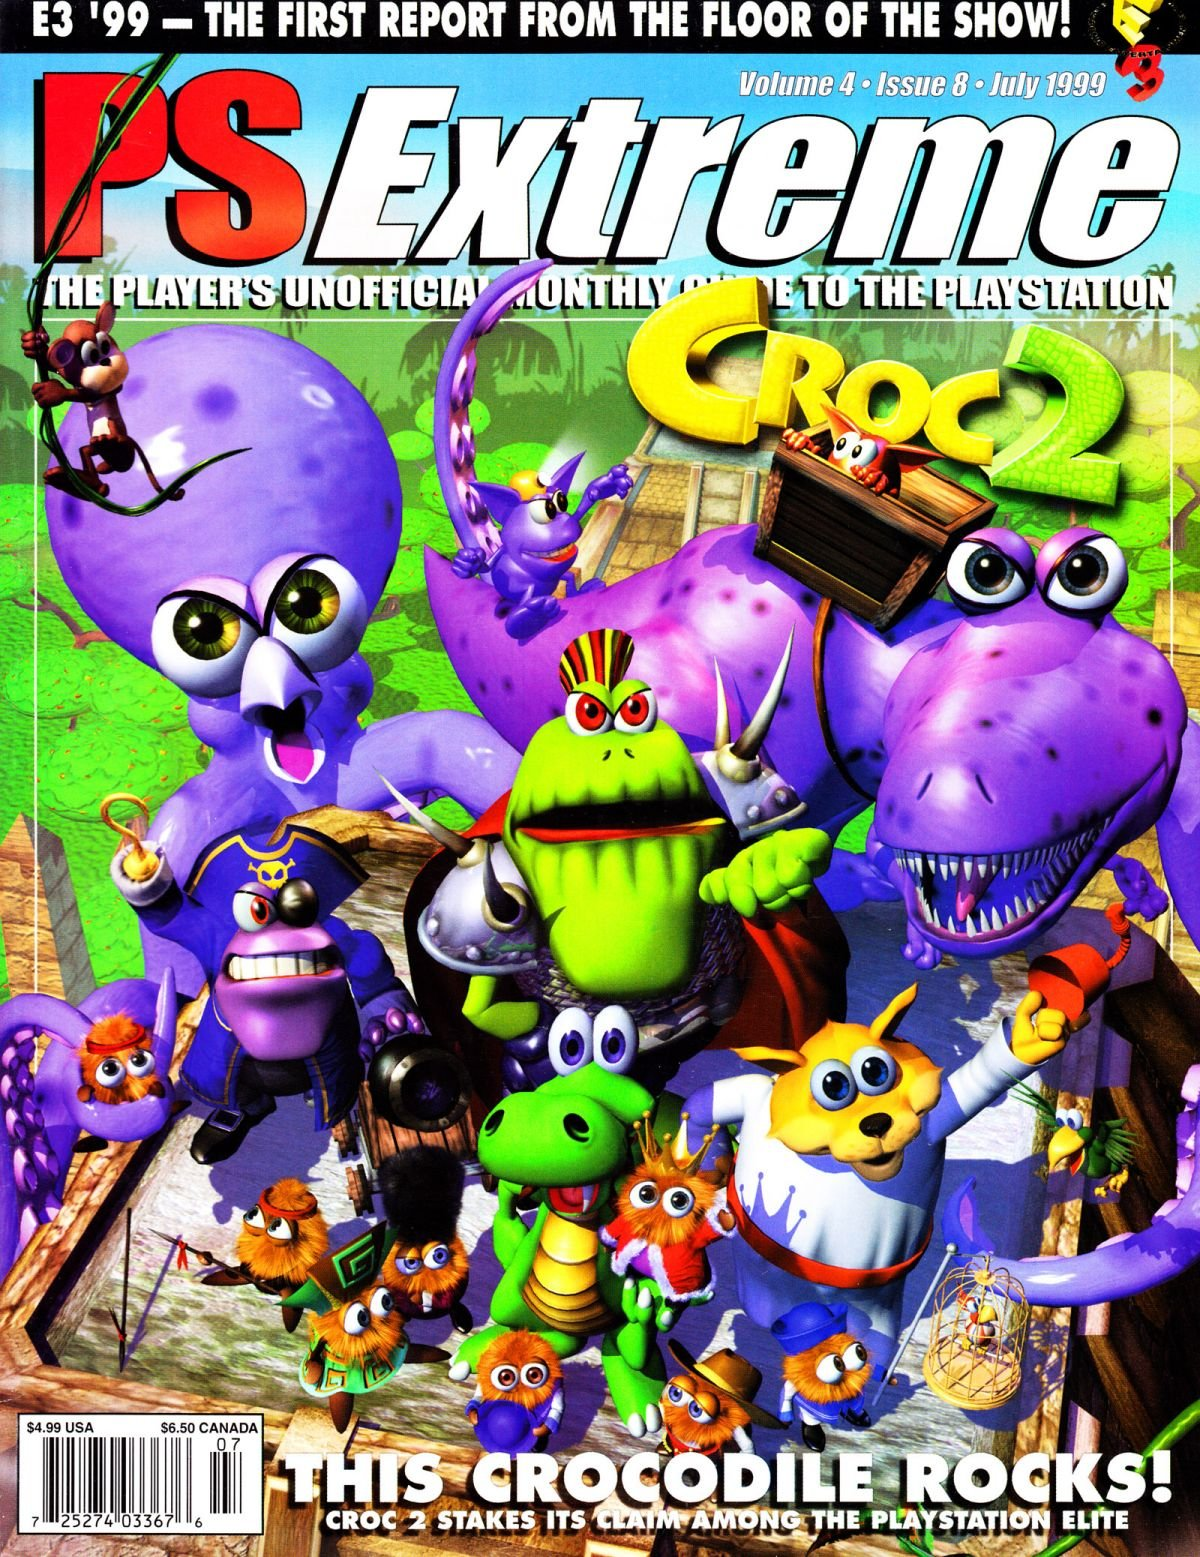 PSExtreme Issue 44 July 1999